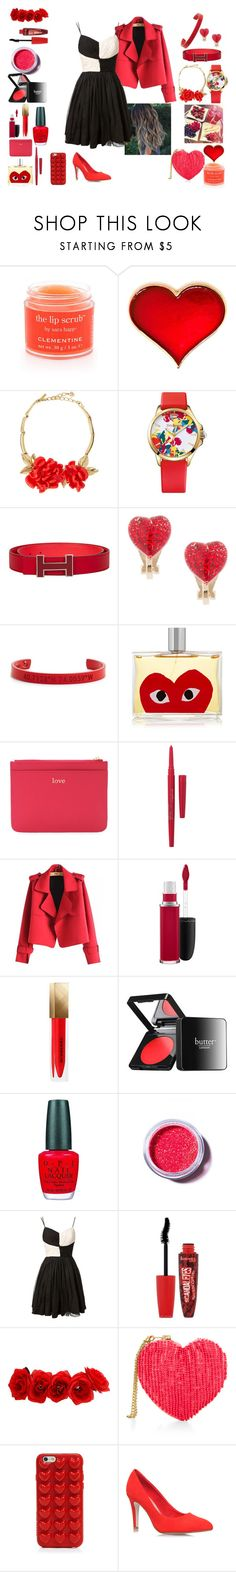 """Black White and Red all over"" by red-queenlove on Polyvore featuring Sara Happ, Oscar de la Renta, Juicy Couture, claire's, Coordinates Collection, Comme des Garçons, Forever 21, Smashbox, Chicnova Fashion and MAC Cosmetics"